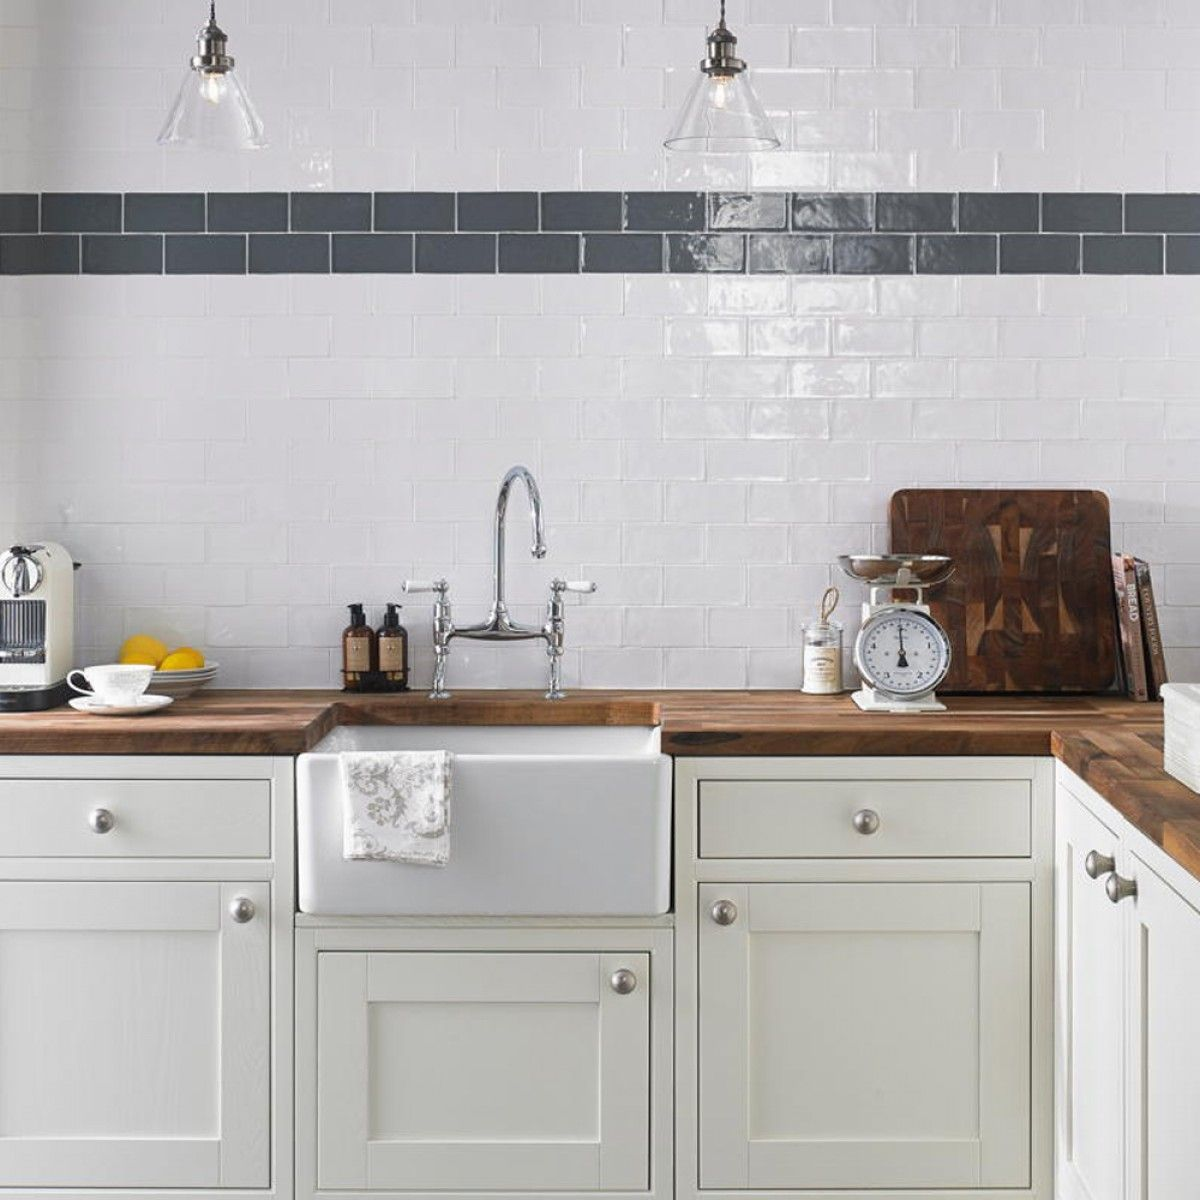 White Kitchen Wall Tiles 15x7.5 rustico blanco brillo | wall tiles | pinterest | wall tiles